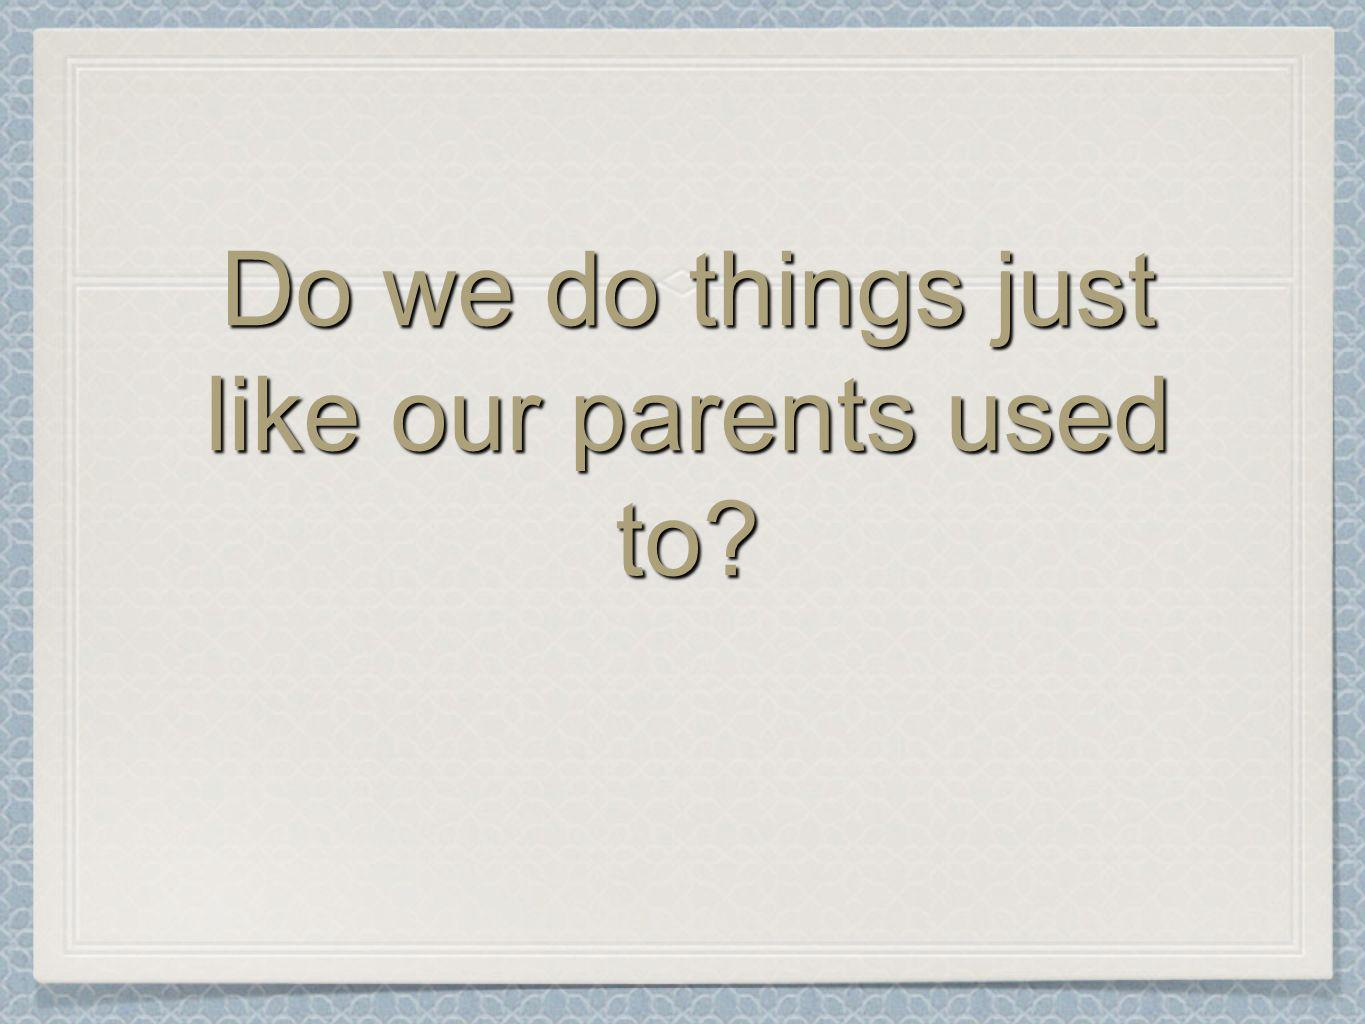 Do we do things just like our parents used to